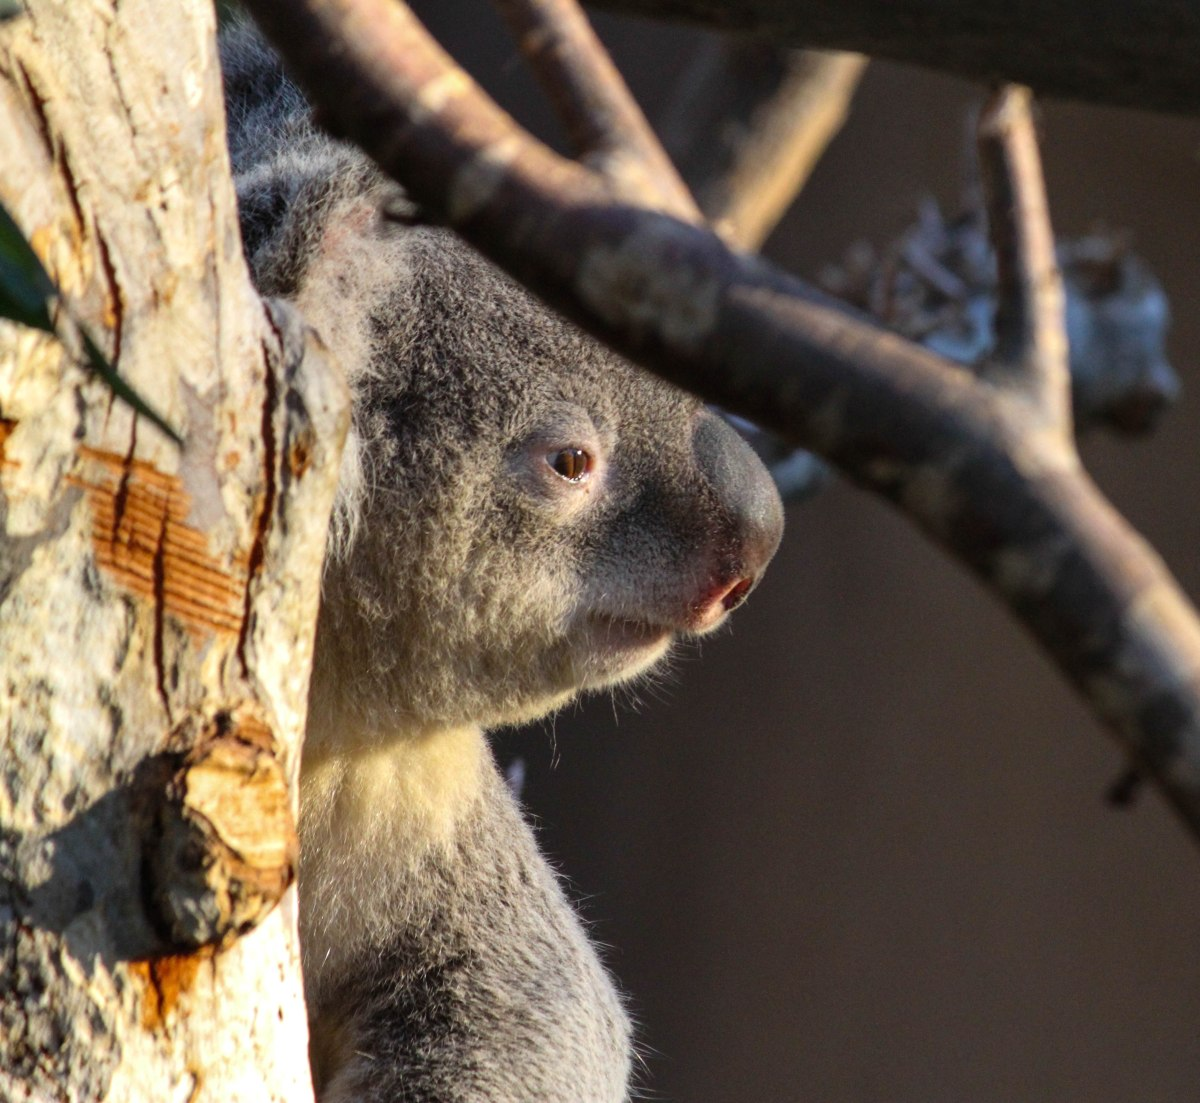 A koala peeks around a tree holding up her nest in the new Outback Koala exhibit.  Koalas are not monkeys either.